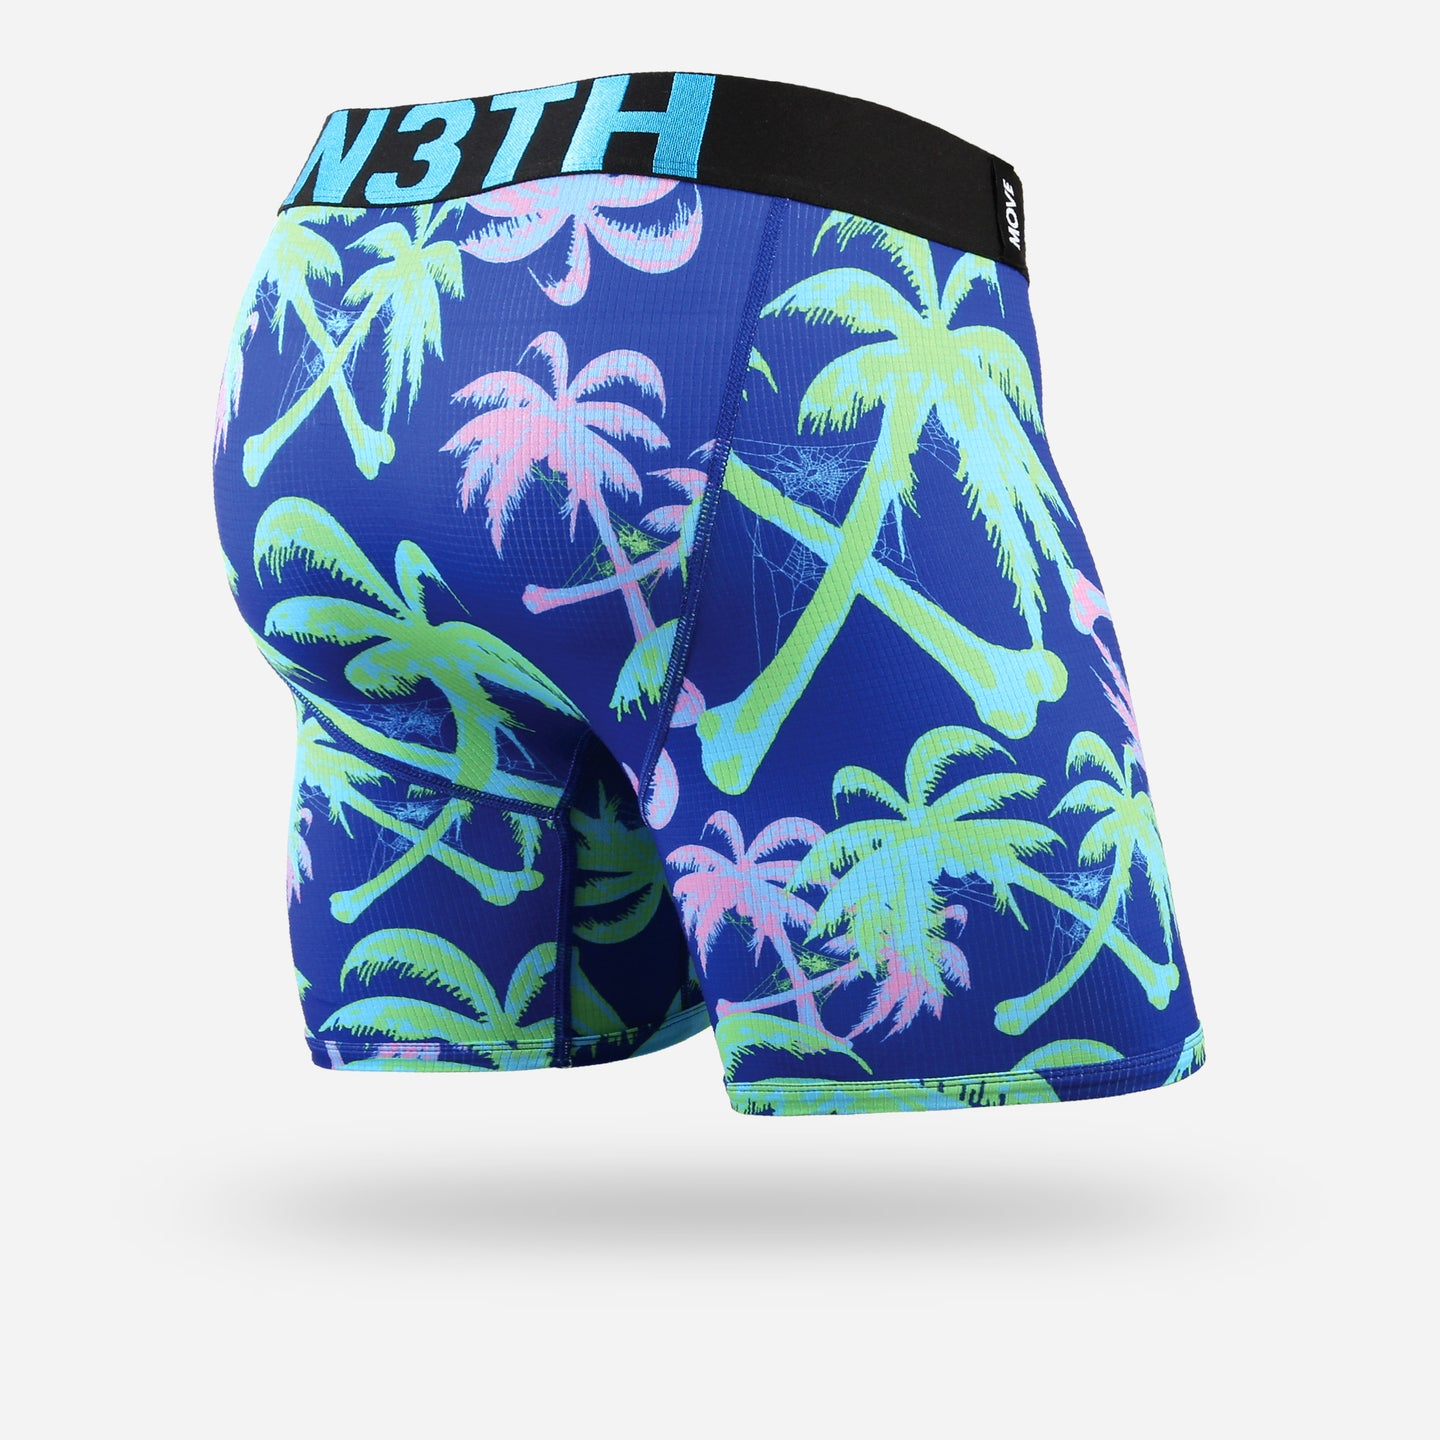 ENTOURAGE BOXER BRIEF: VACAY PACIFIC